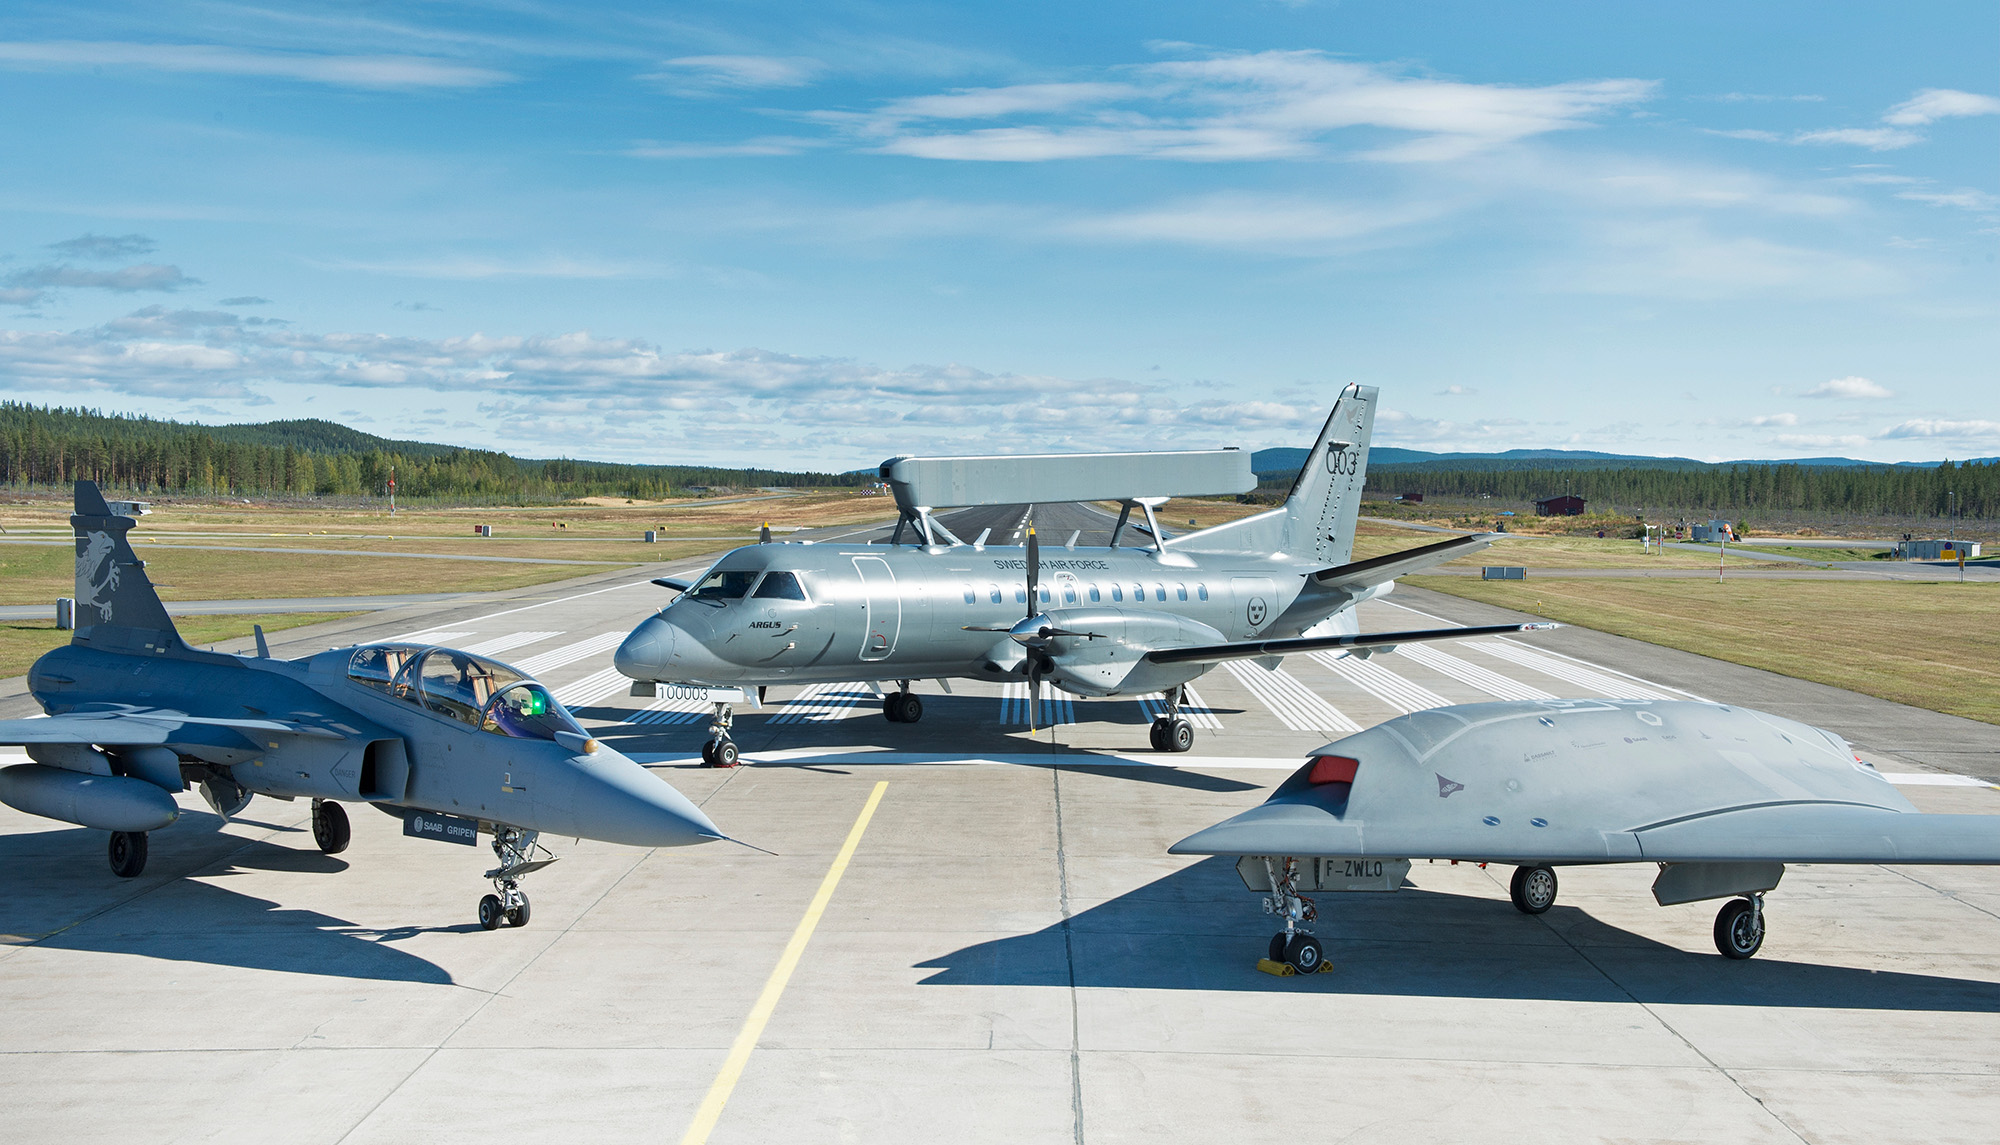 Gripen 39-7 with Saab 340 AEW and Neuron Unmanned